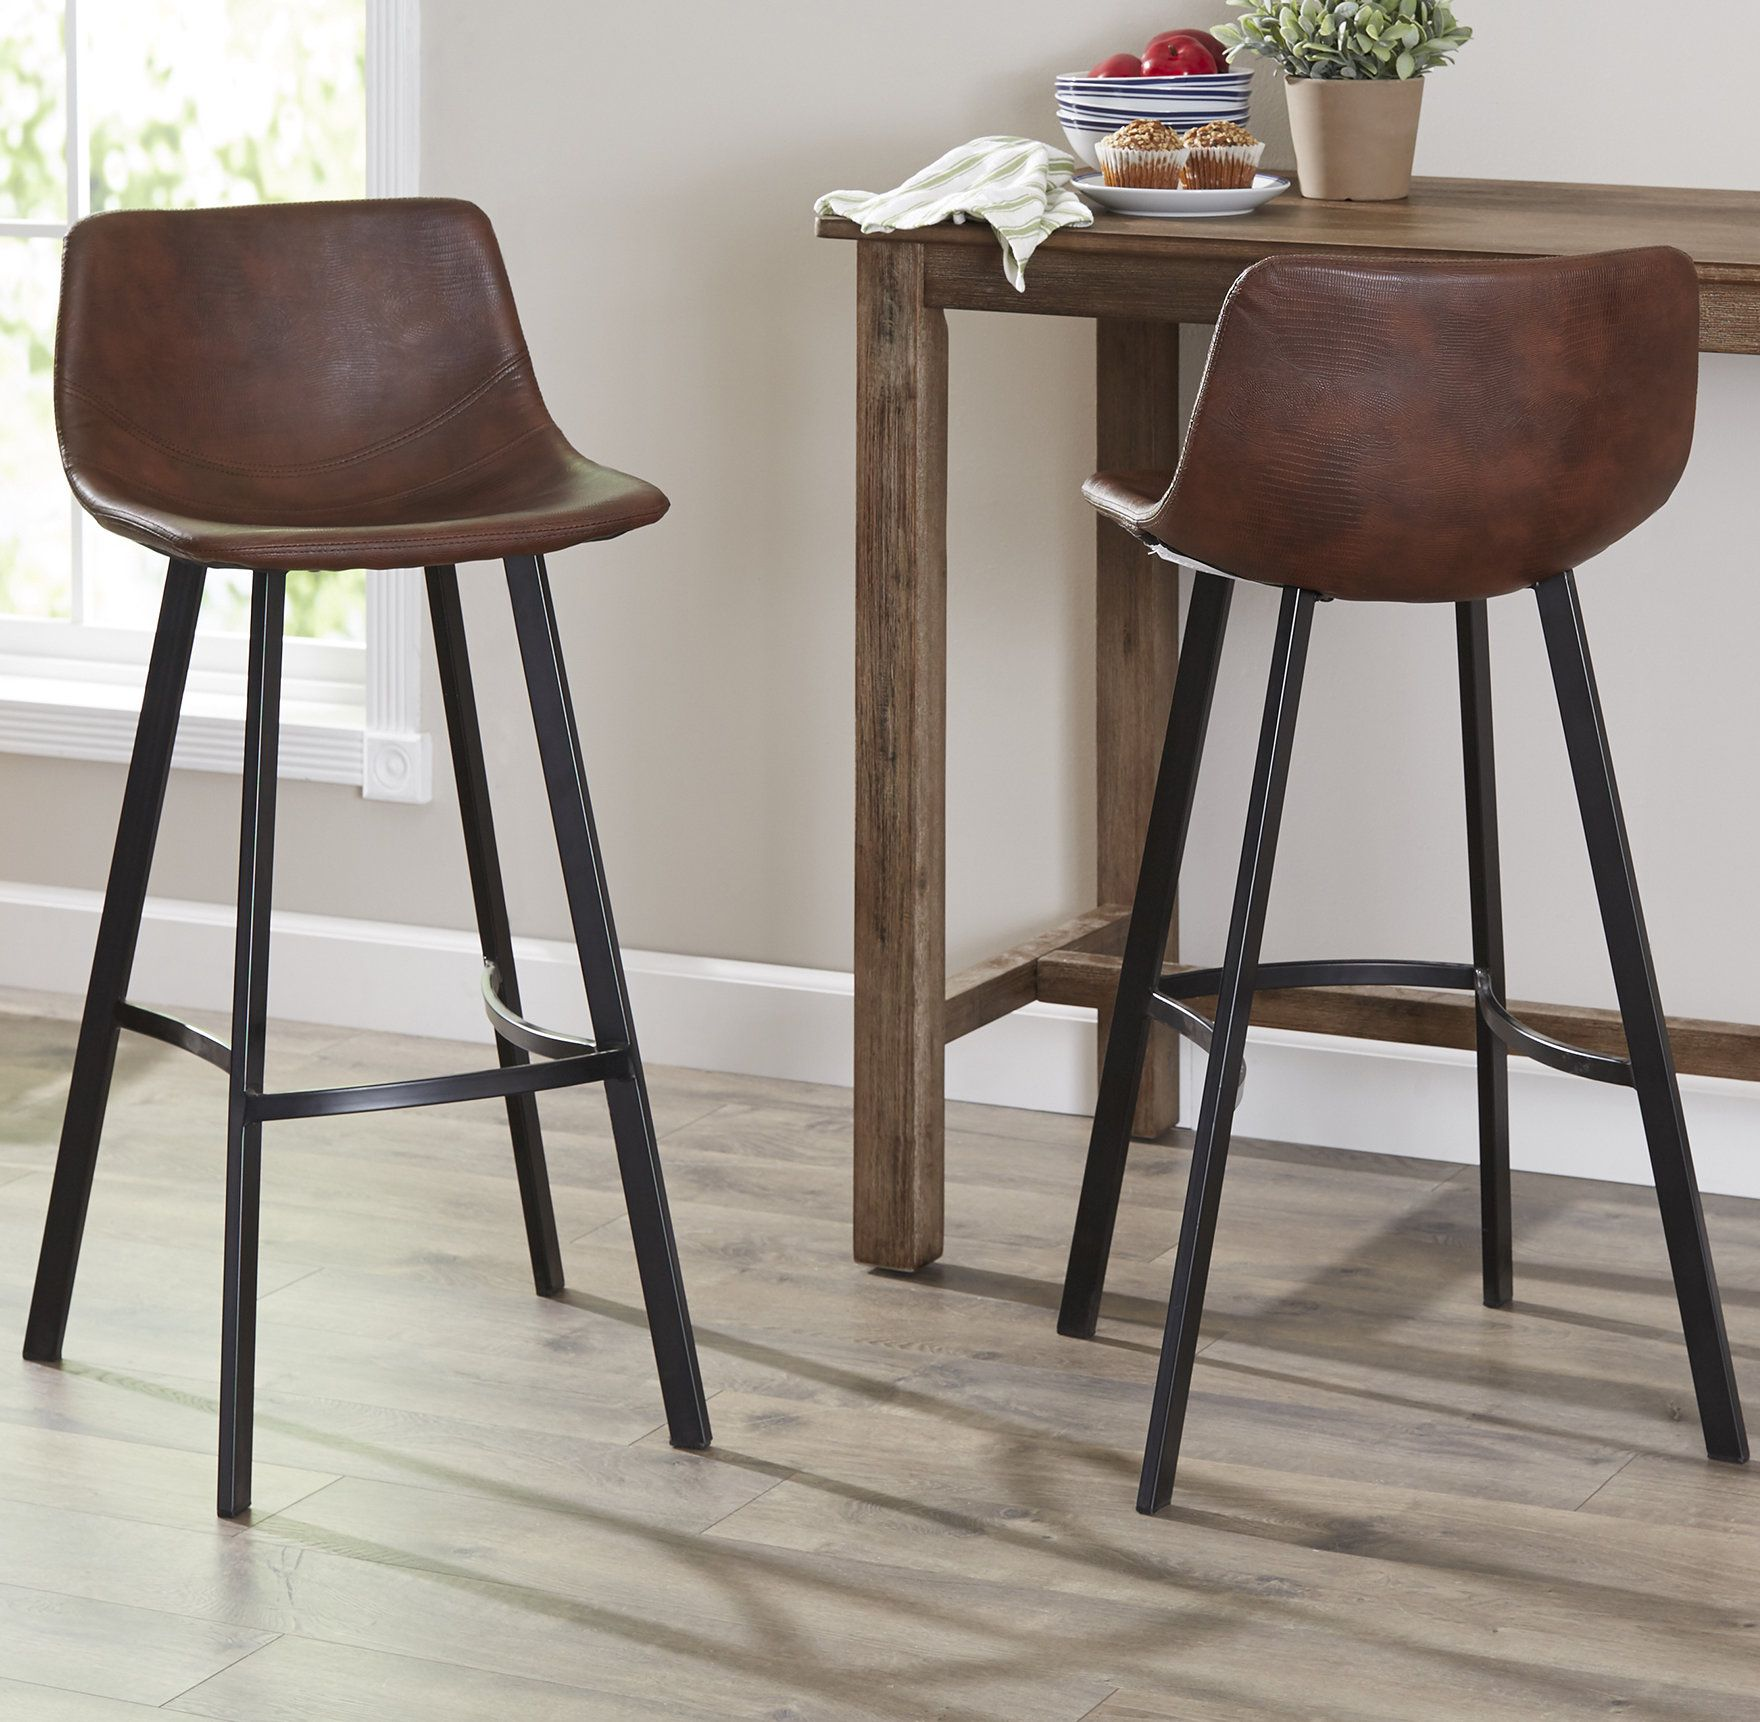 Groovy The Mary Kate Bar Stool Is A Great Addition To Your Home Pdpeps Interior Chair Design Pdpepsorg